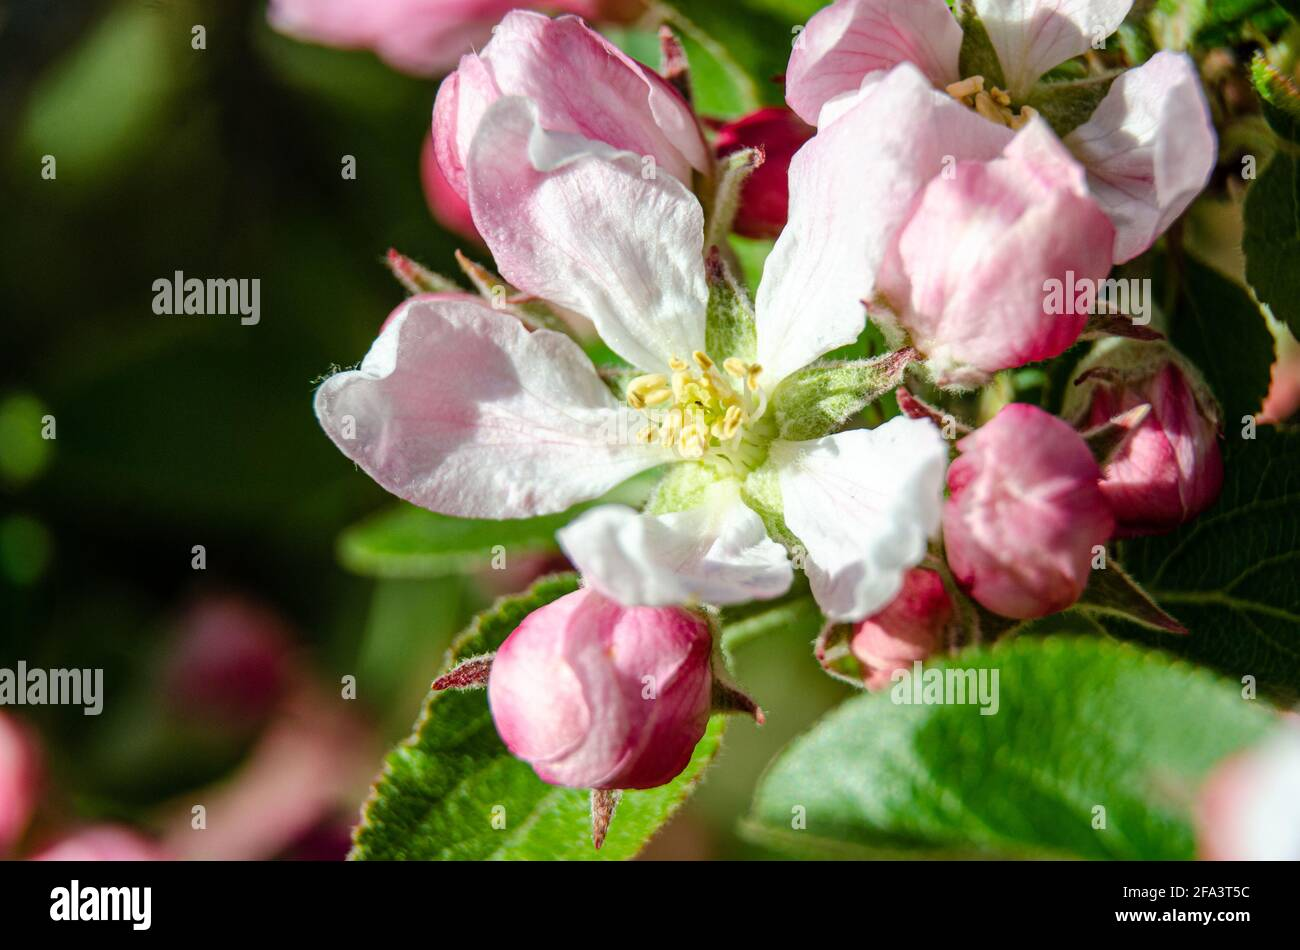 apple-blossom-and-flower-buds-on-an-apple-tree-in-a-residential-garden-2FA3T5C.jpg